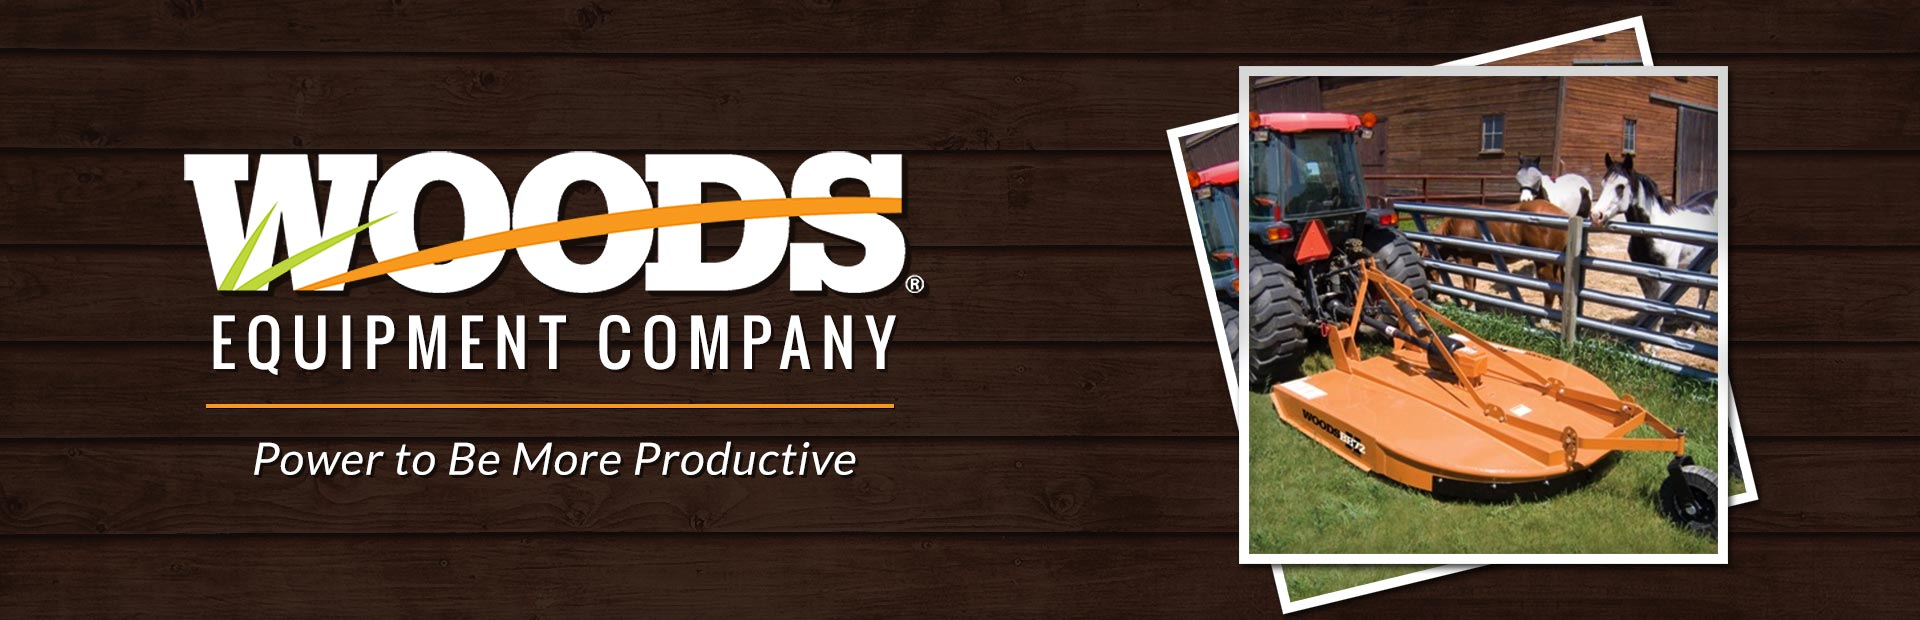 Woods Equipment Company: Click here to view the models.